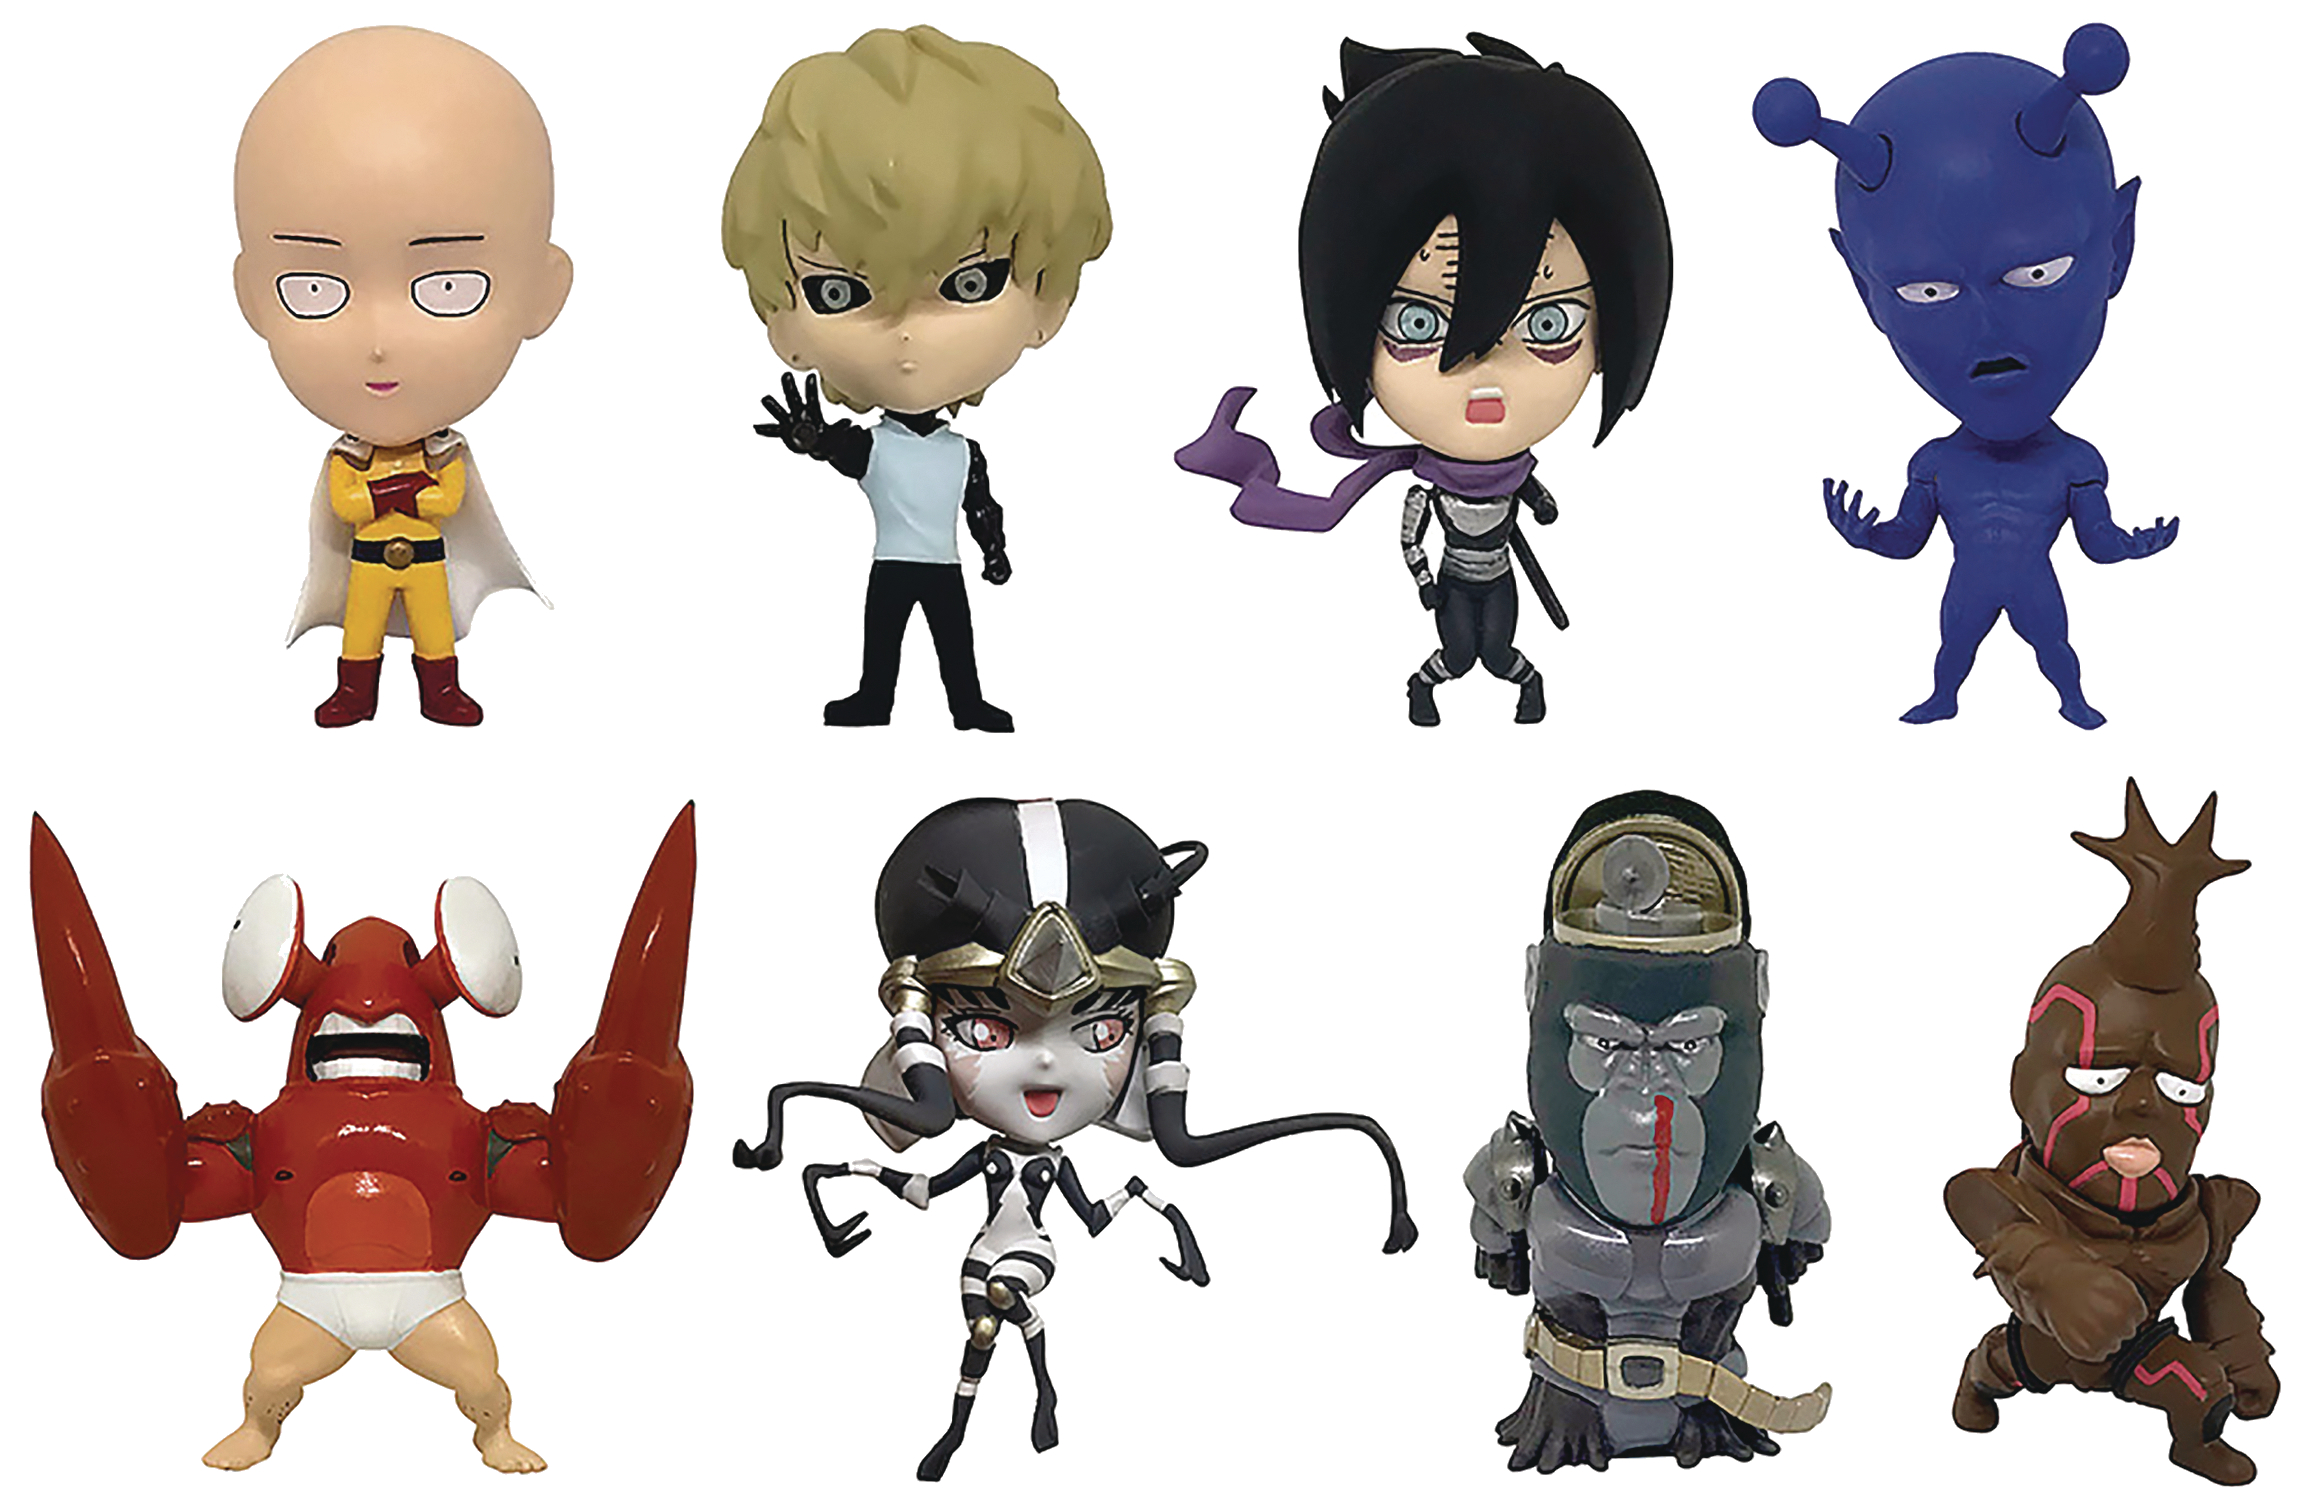 ONE PUNCH MAN VOL 1 16D COLL FIG 8PC BMB DS